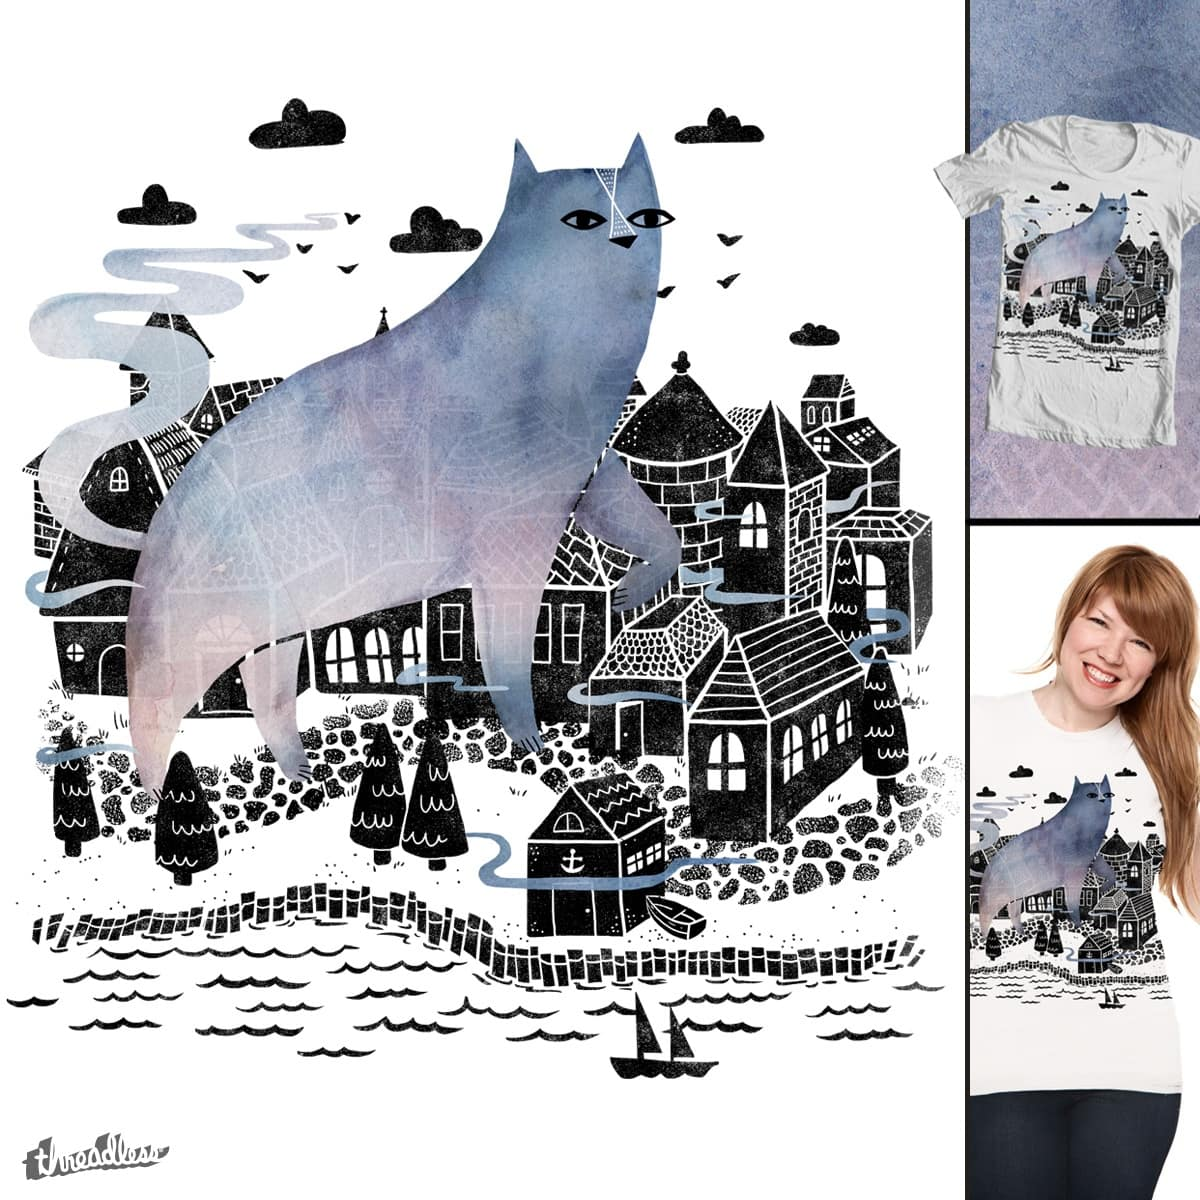 The Fog by littleclyde on Threadless